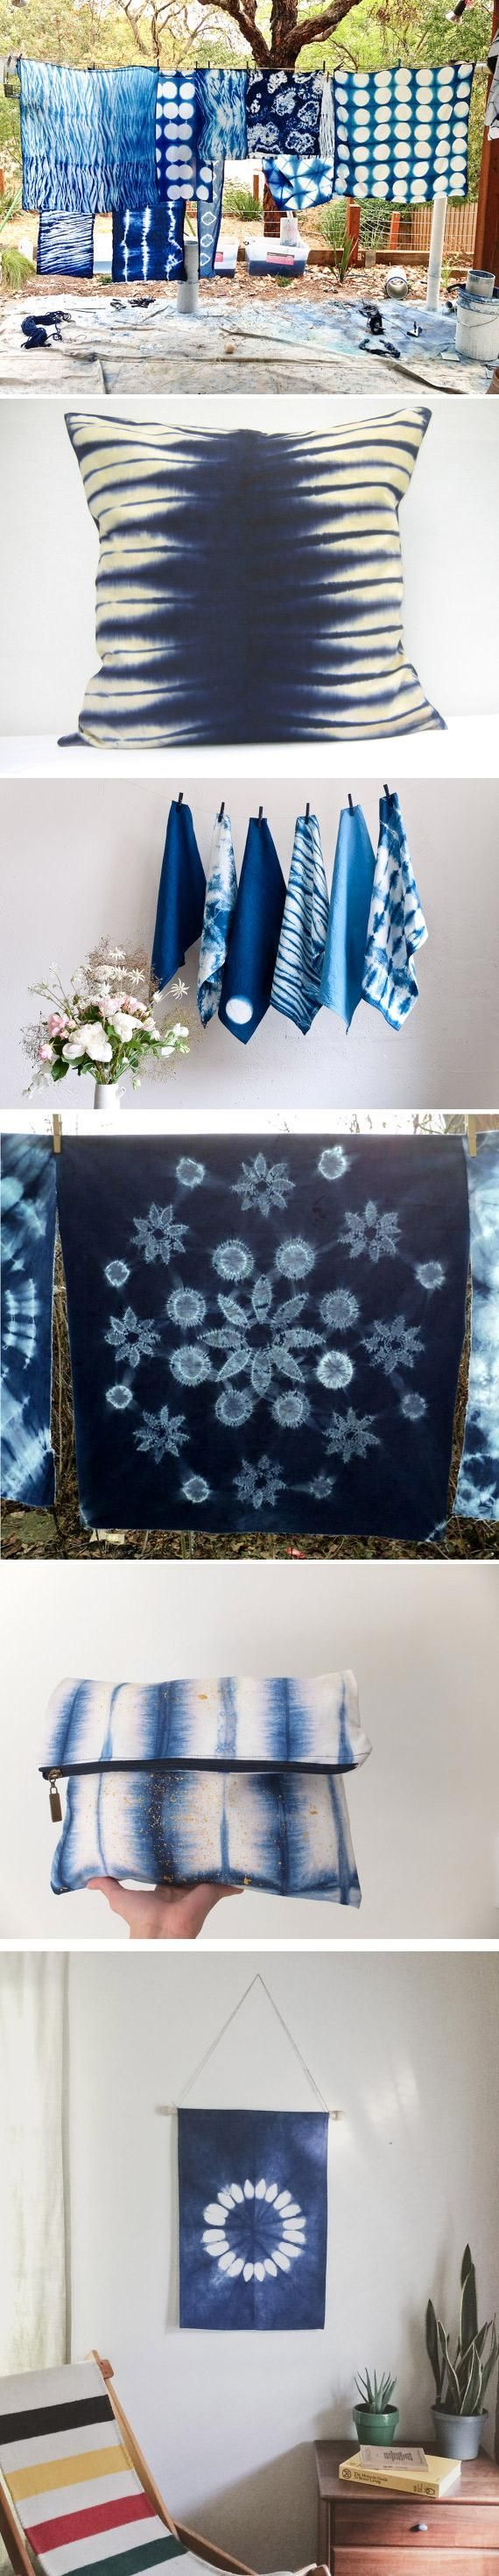 Obviously we use Rit dye in dark blues when we do shibori but there are some really great tips here no matter which type of dyes you choose.